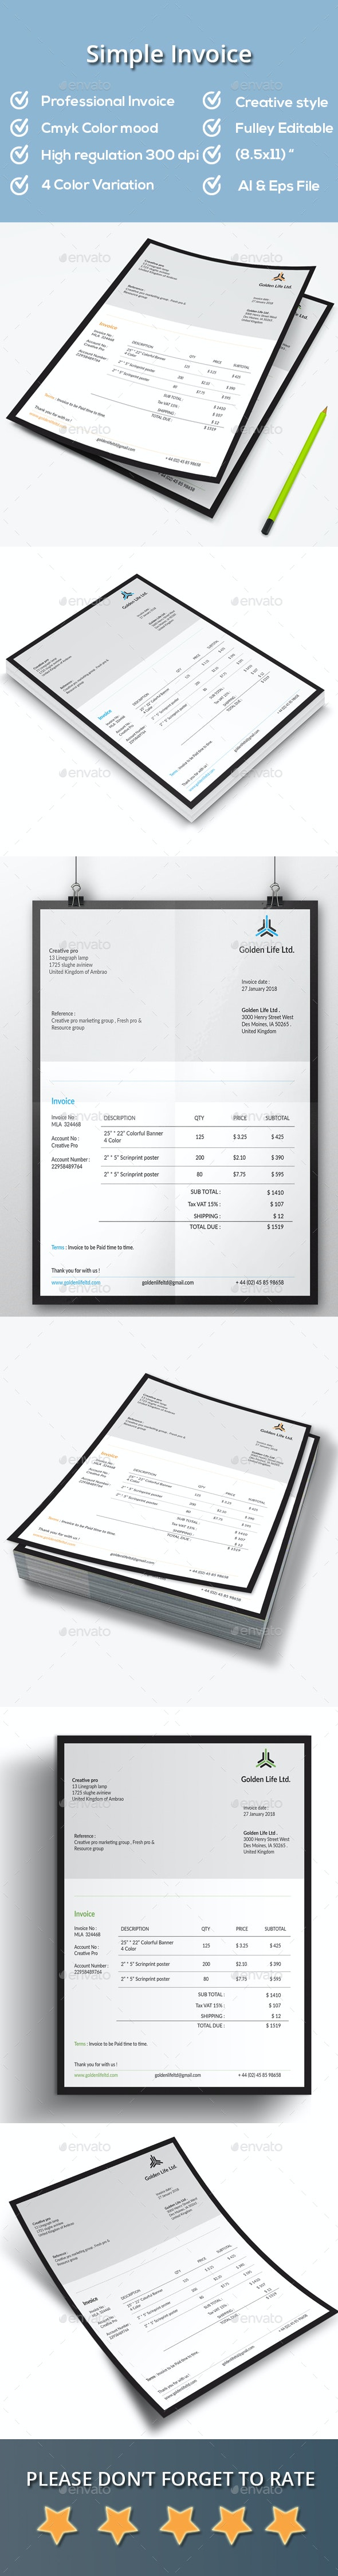 Simple Invoice - Proposals & Invoices Stationery